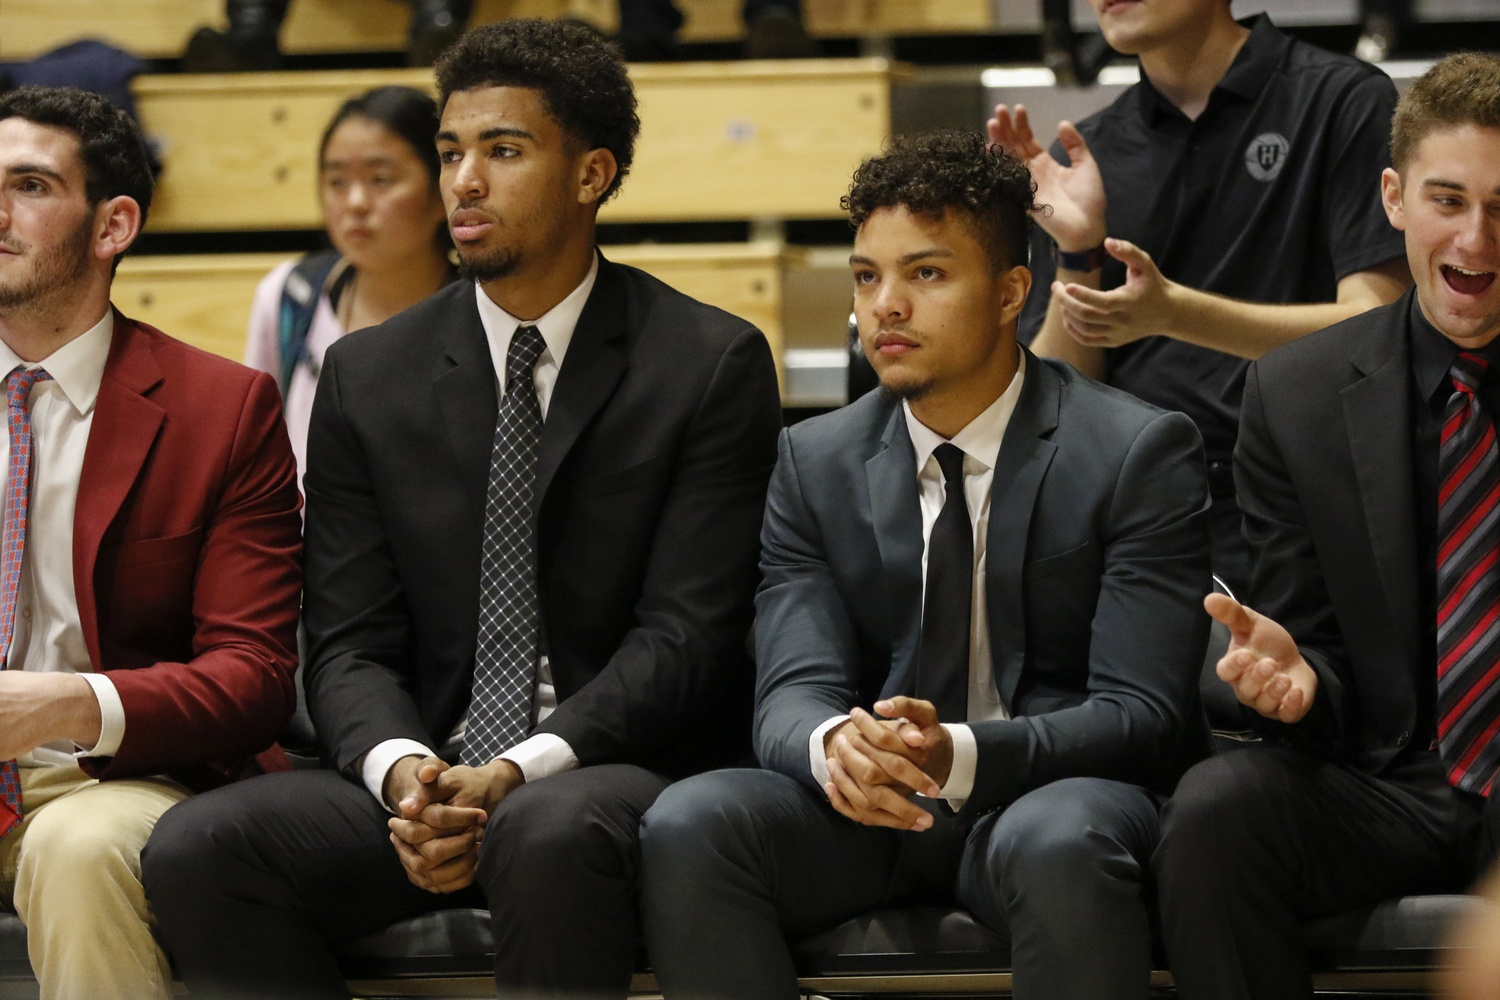 With Aiken and Towns sidelined through non-conference play, the Crimson finished with a 6-7 record prior to Aiken's return.